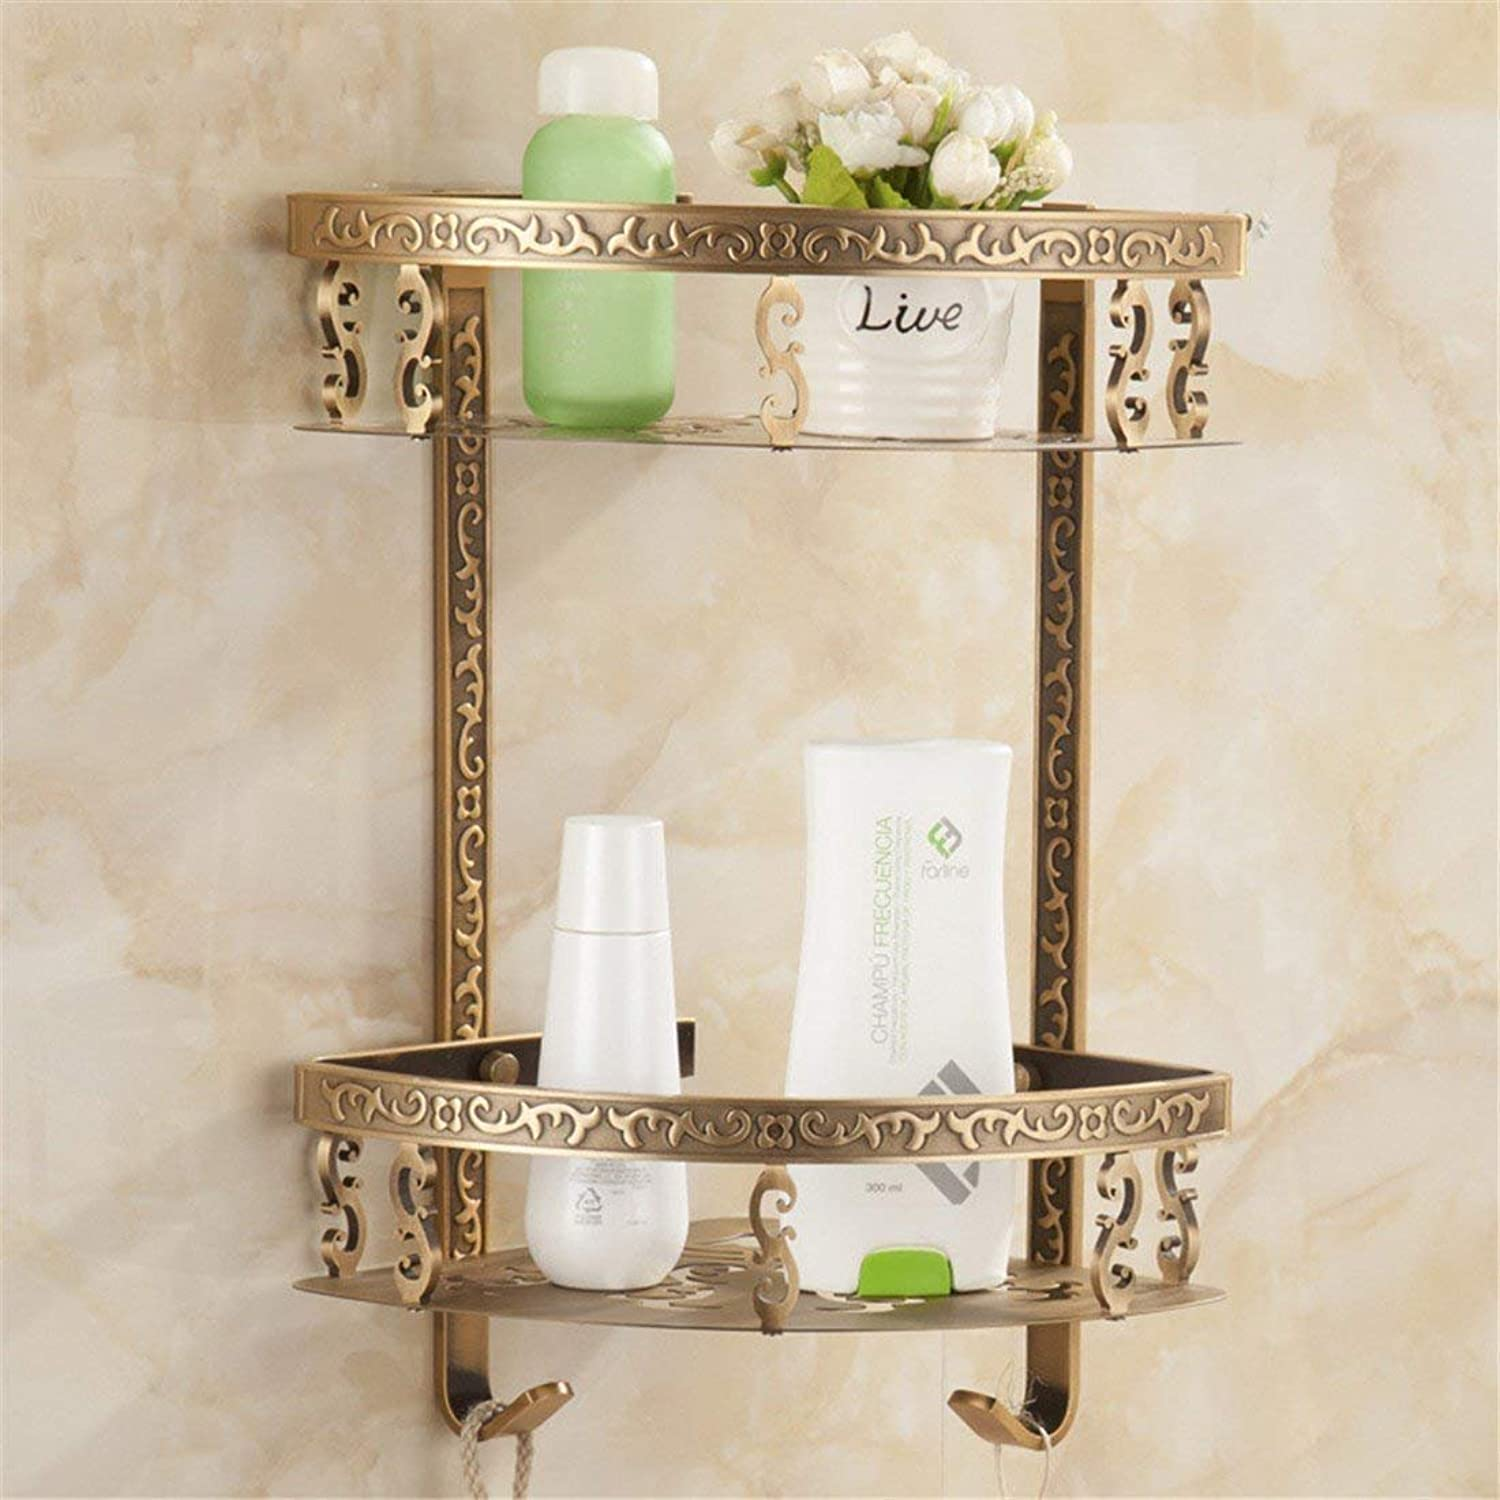 Former European Bathroom Aluminum Function Hanger Dry-Towels,Place The Shopping Cart 2 B